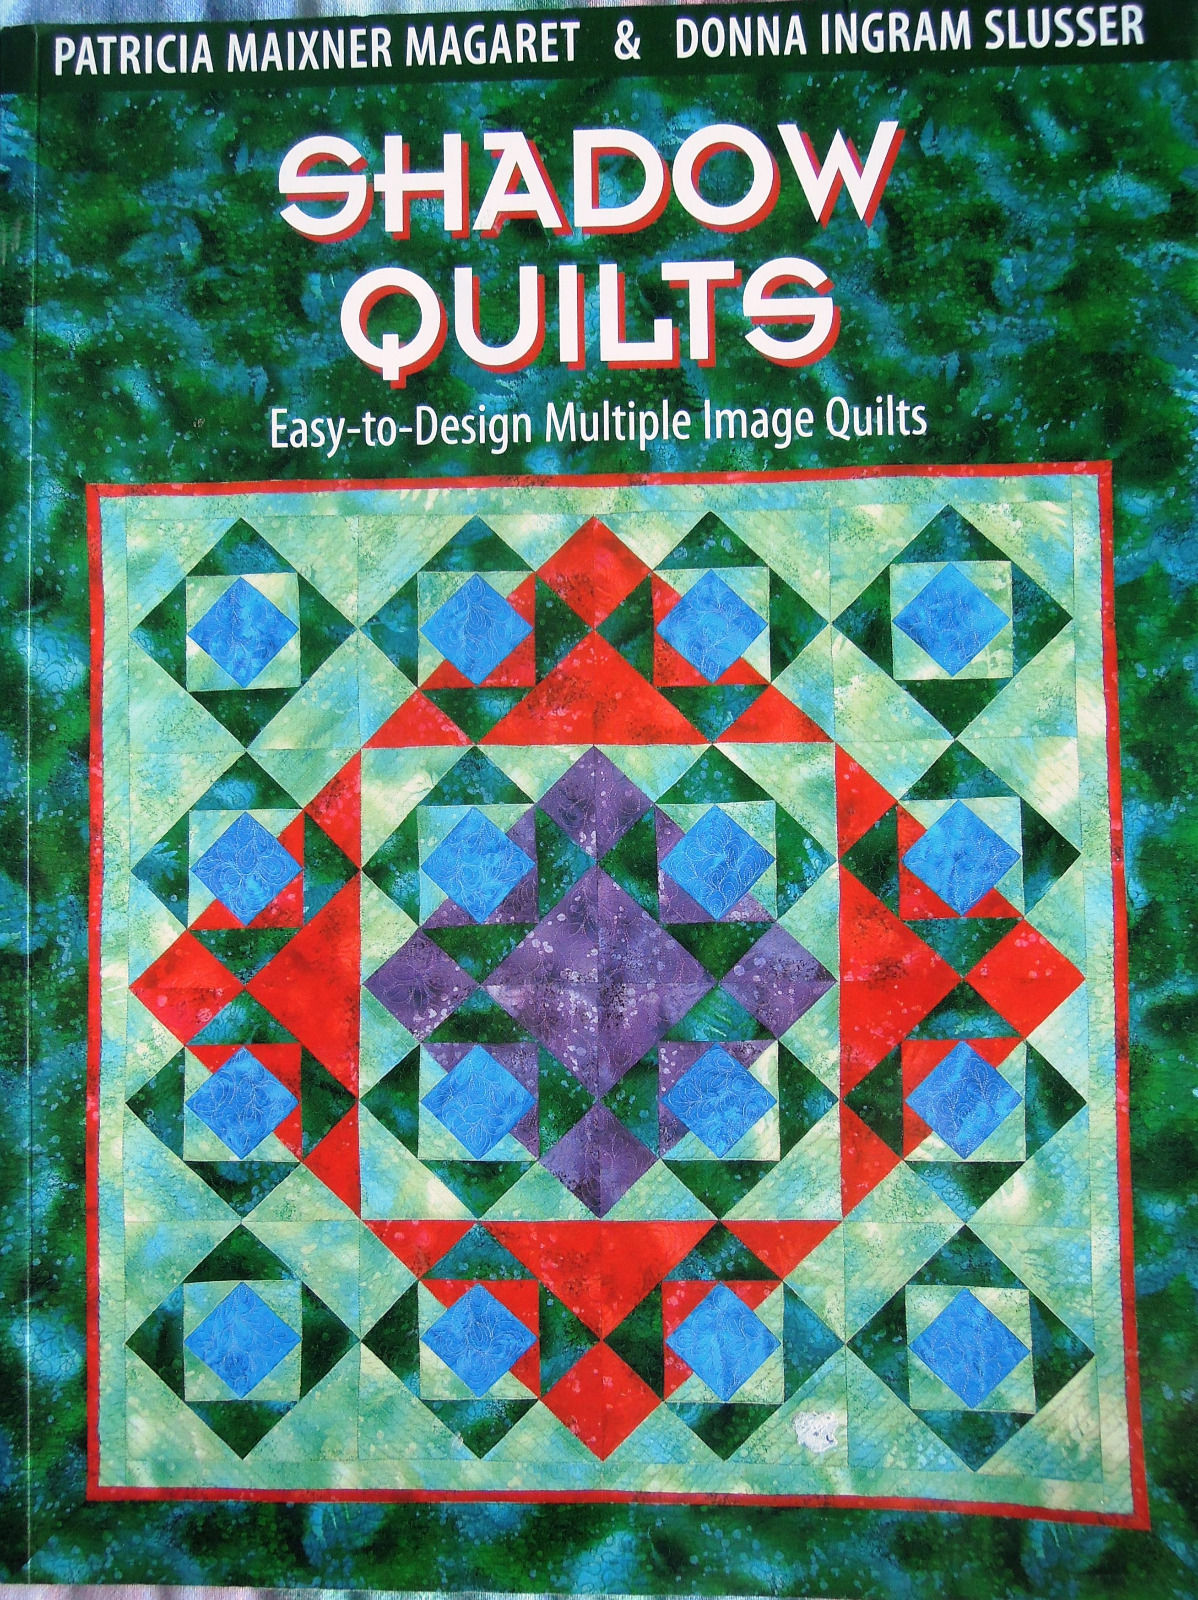 Only $2.59 ! Shadow quilts (click!)